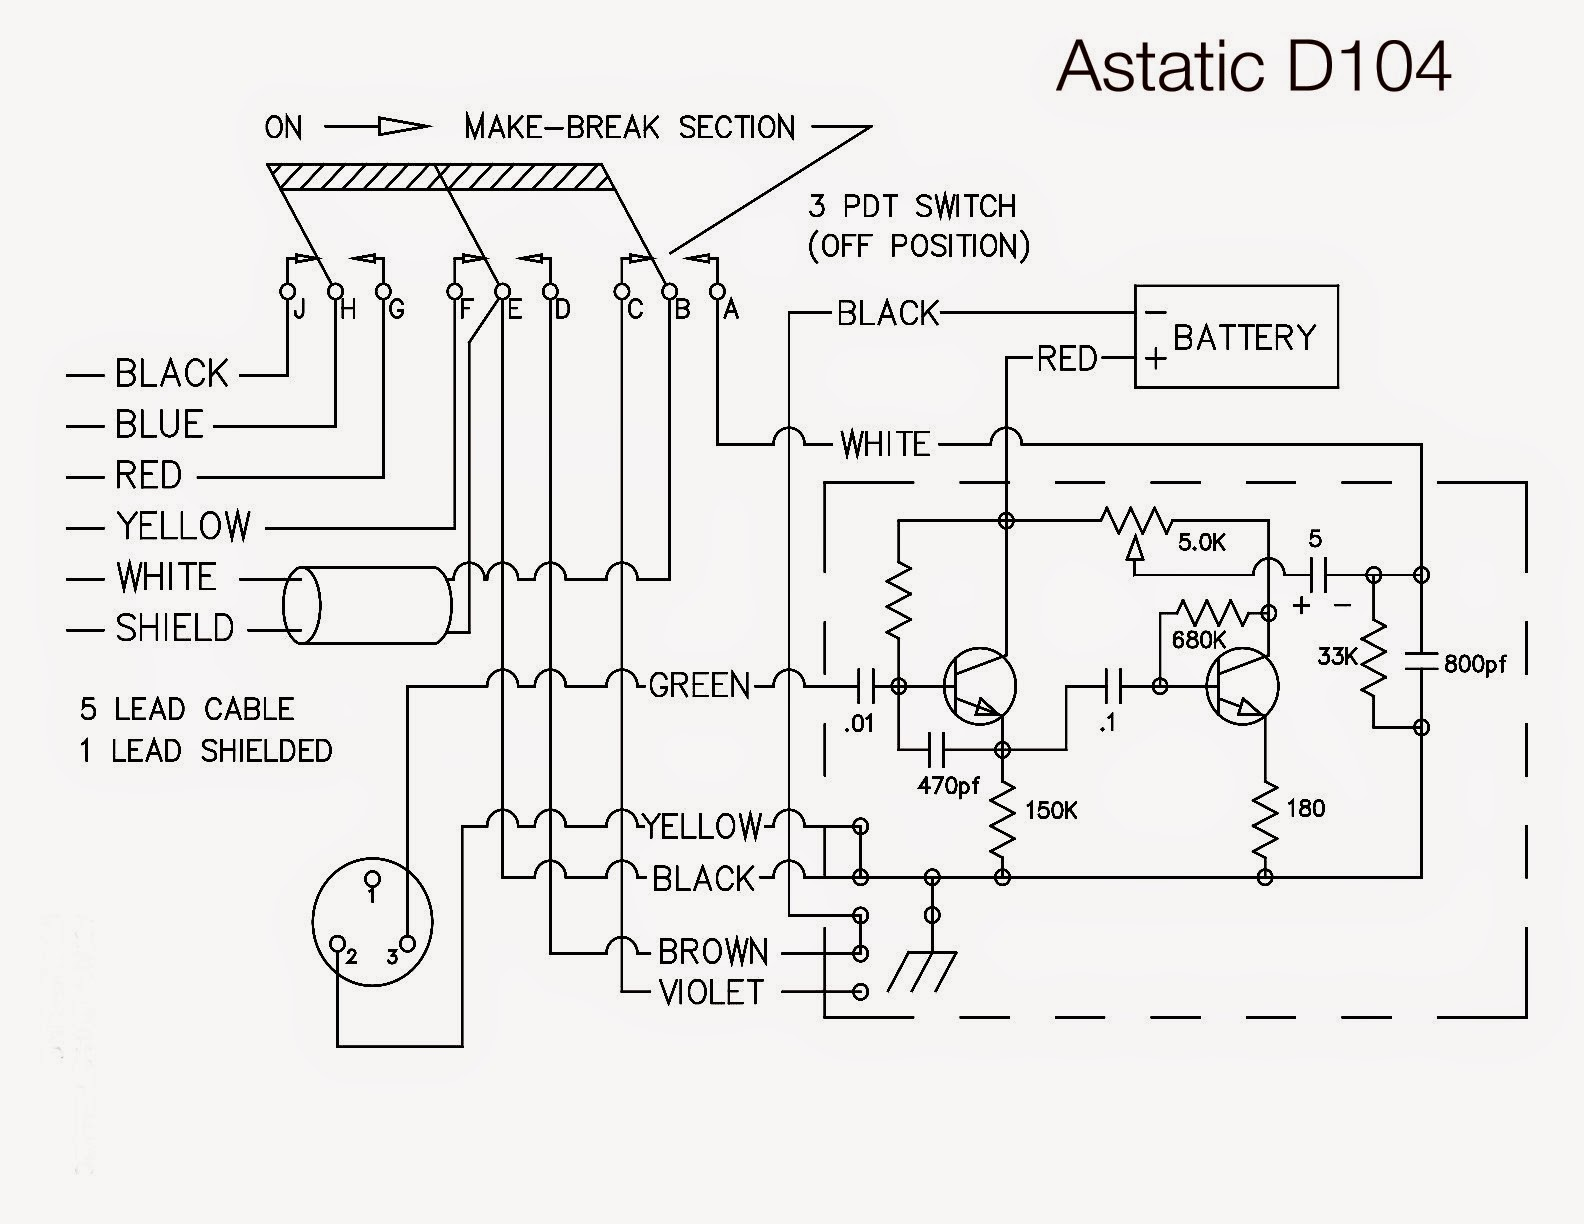 hight resolution of astatic mic wiring diagram and then astatic d 104 microphone wiring diagram in addition astatic silver eagle wiring diagram as well as astatic echo board